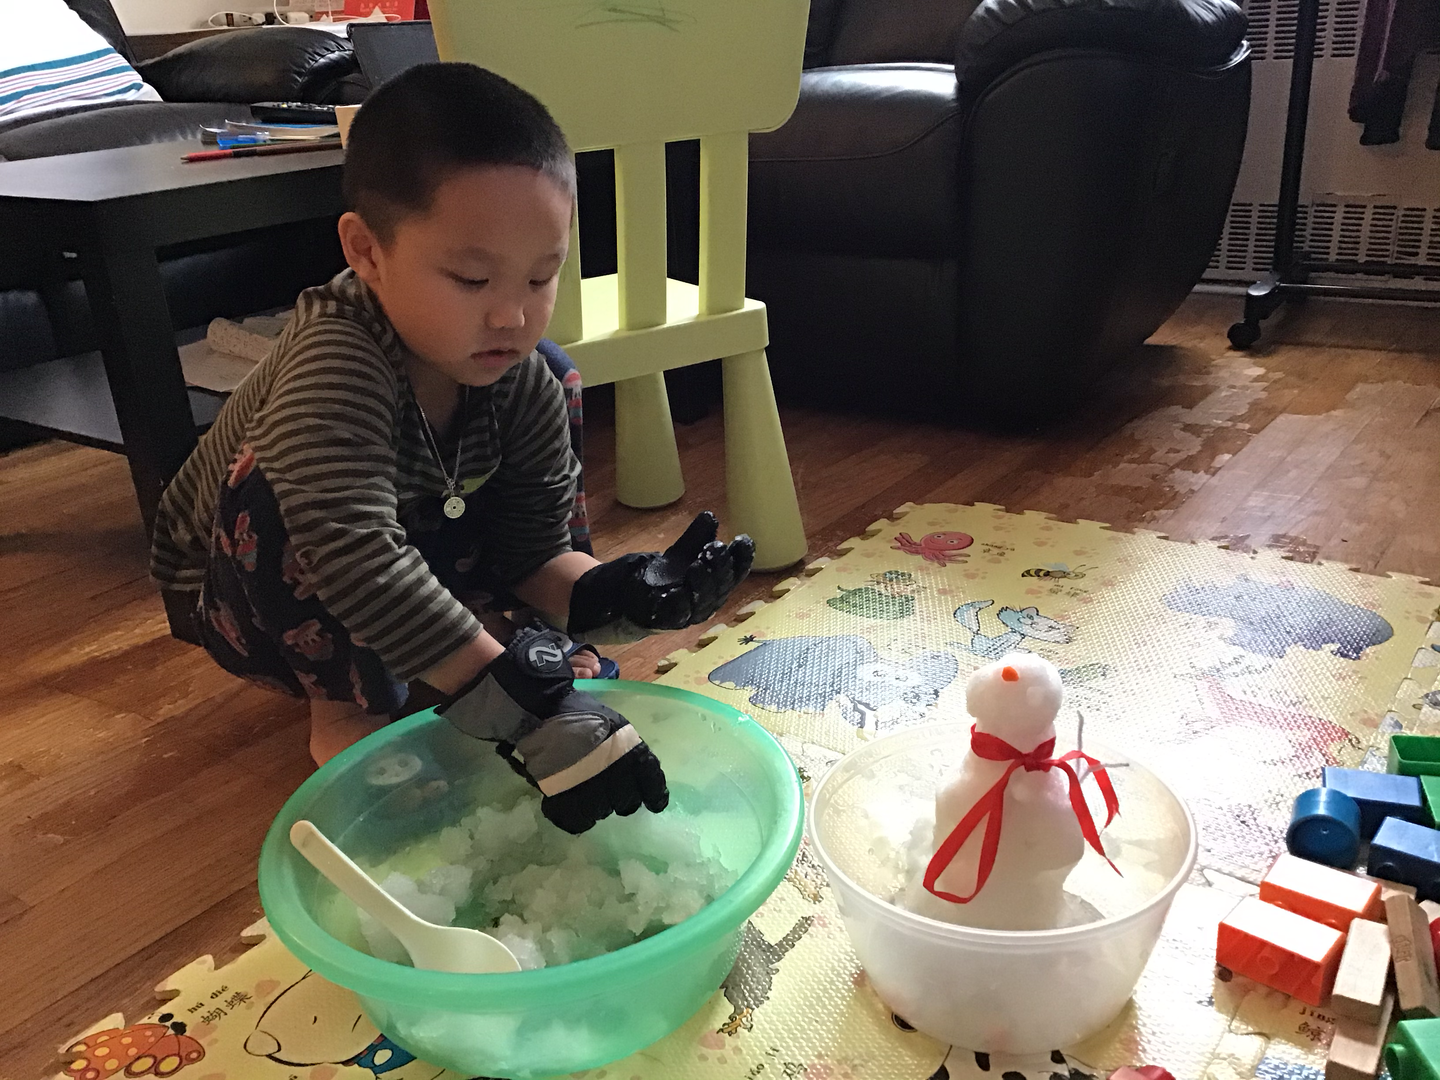 a boy playing with snow in the house